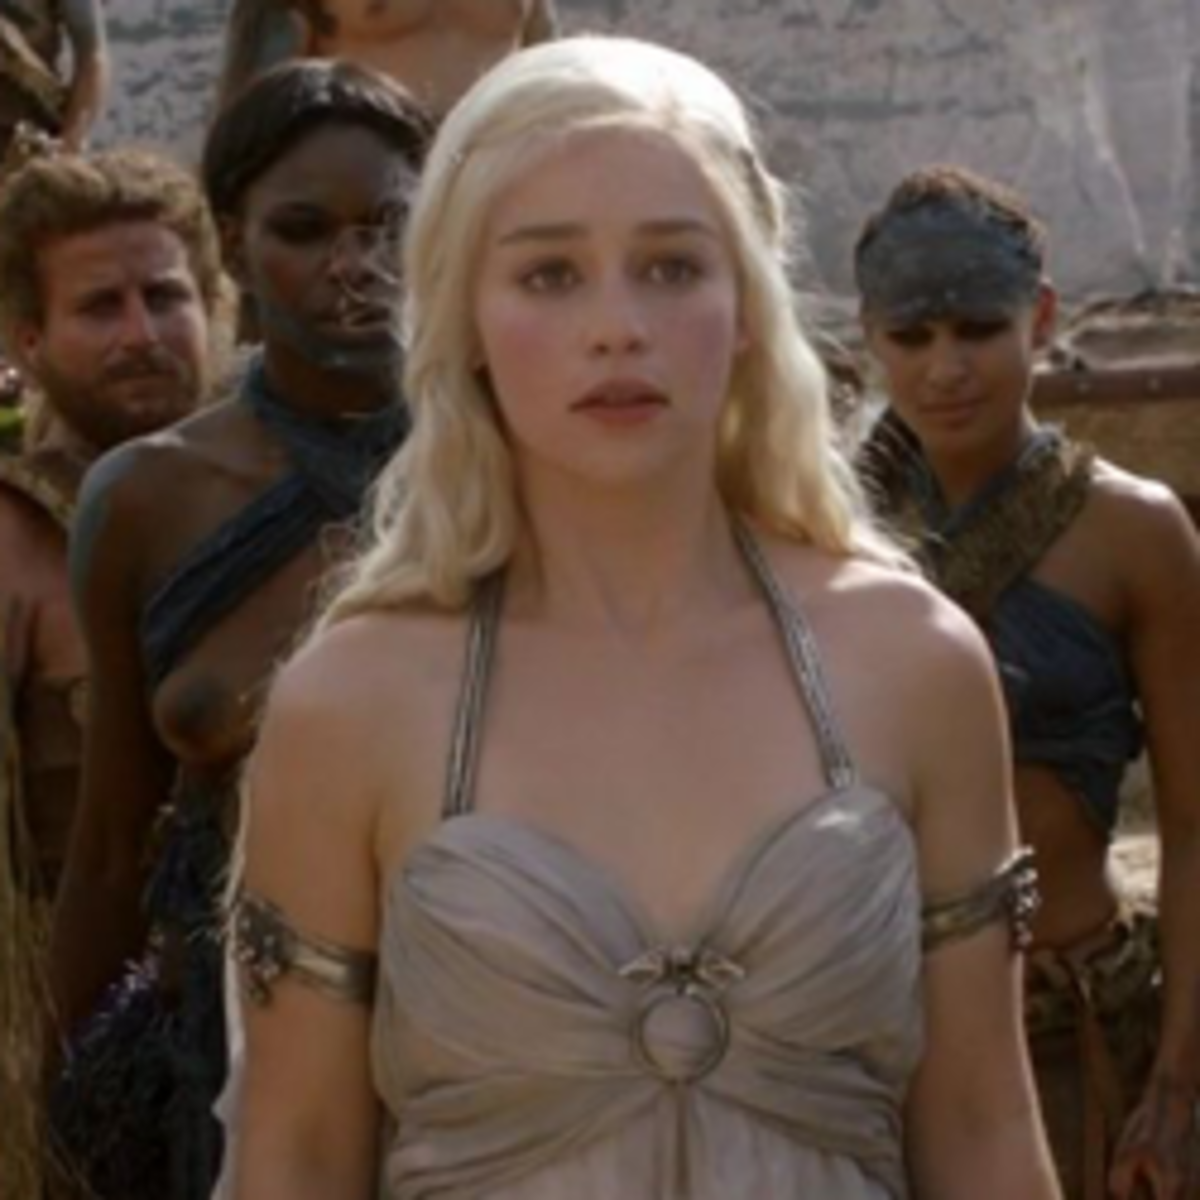 The Top Ten Best Costumes from Game of Thrones Season 1  sc 1 st  HubPages & The Top Ten Best Costumes from Game of Thrones Season 1 | HubPages